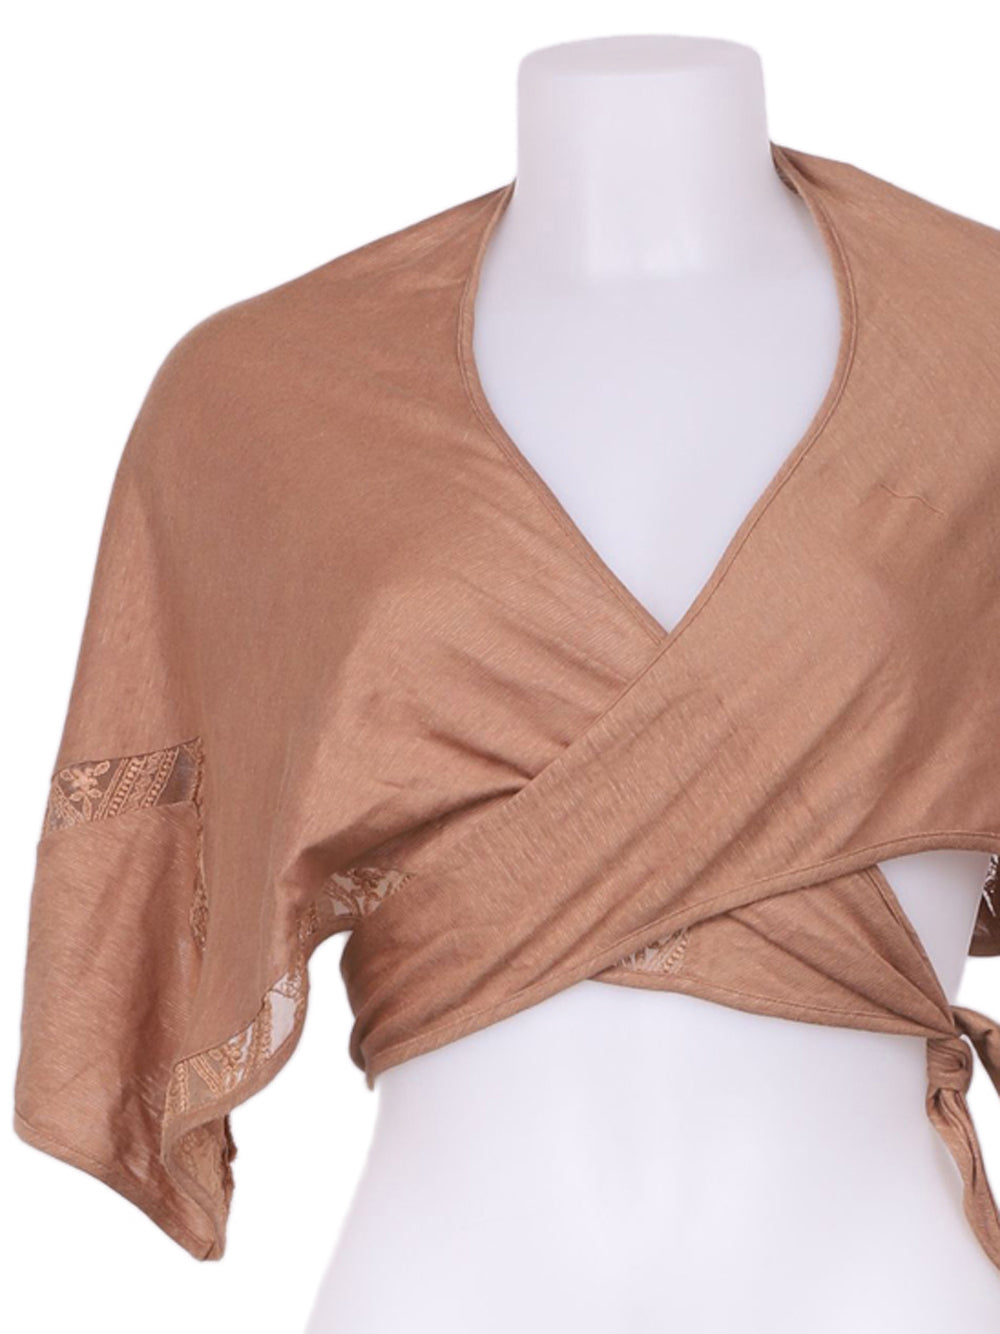 Detail photo of Preloved La Perla Brown Woman's bolero - size 12/L